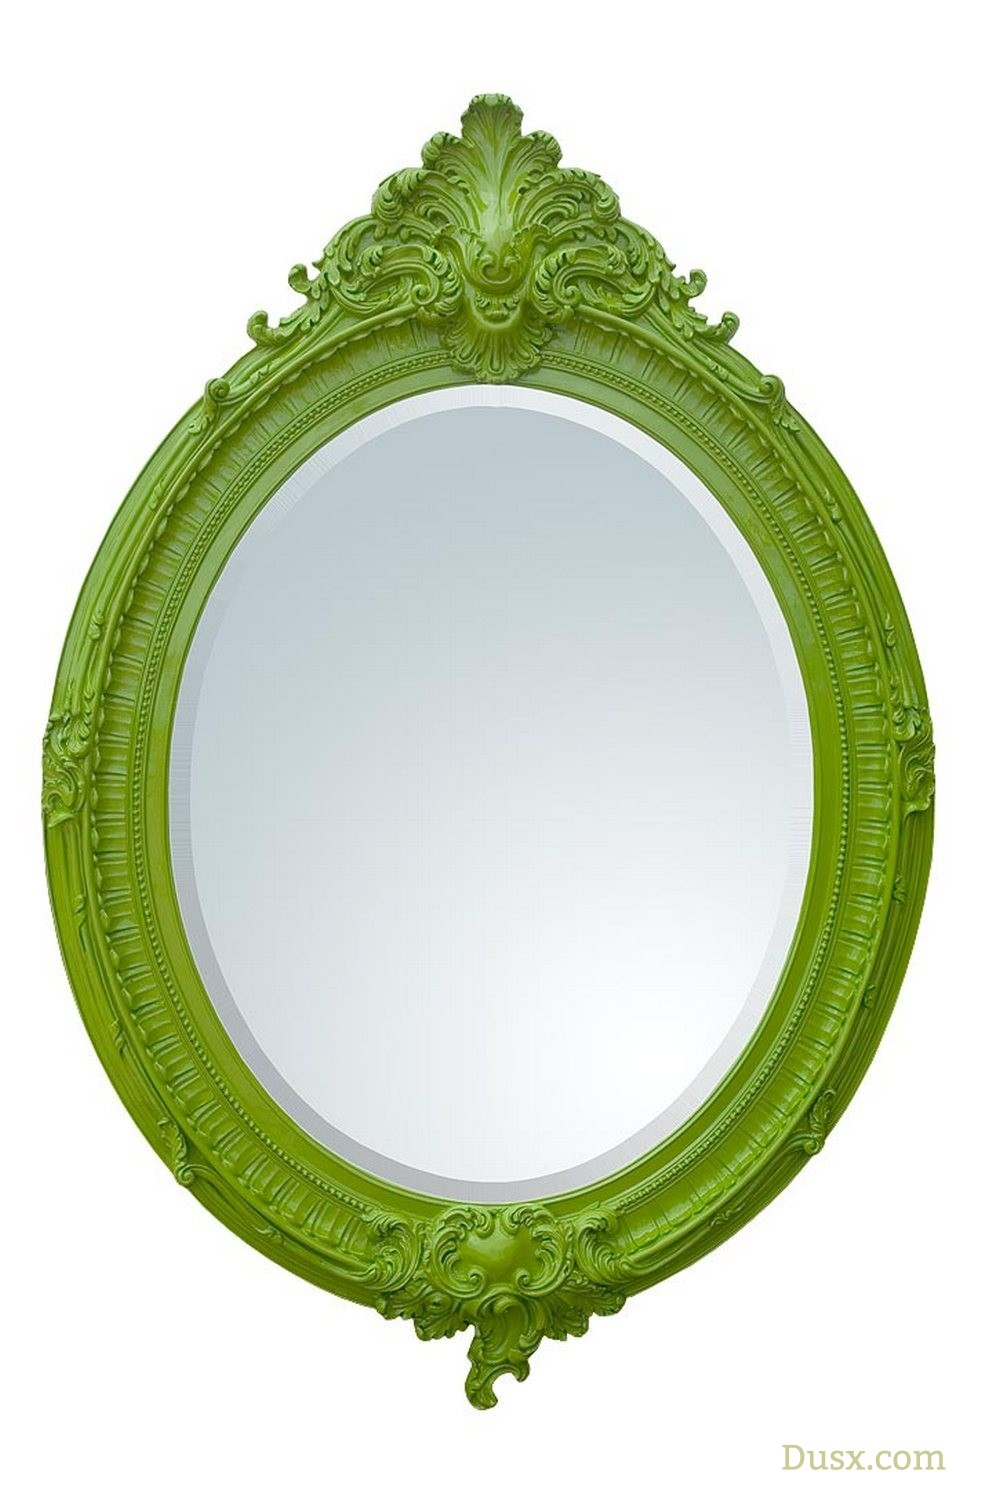 Almandine French Rococo Antique Green Leaf Oval Large Mirror For Inside Oval French Mirror (Image 5 of 15)